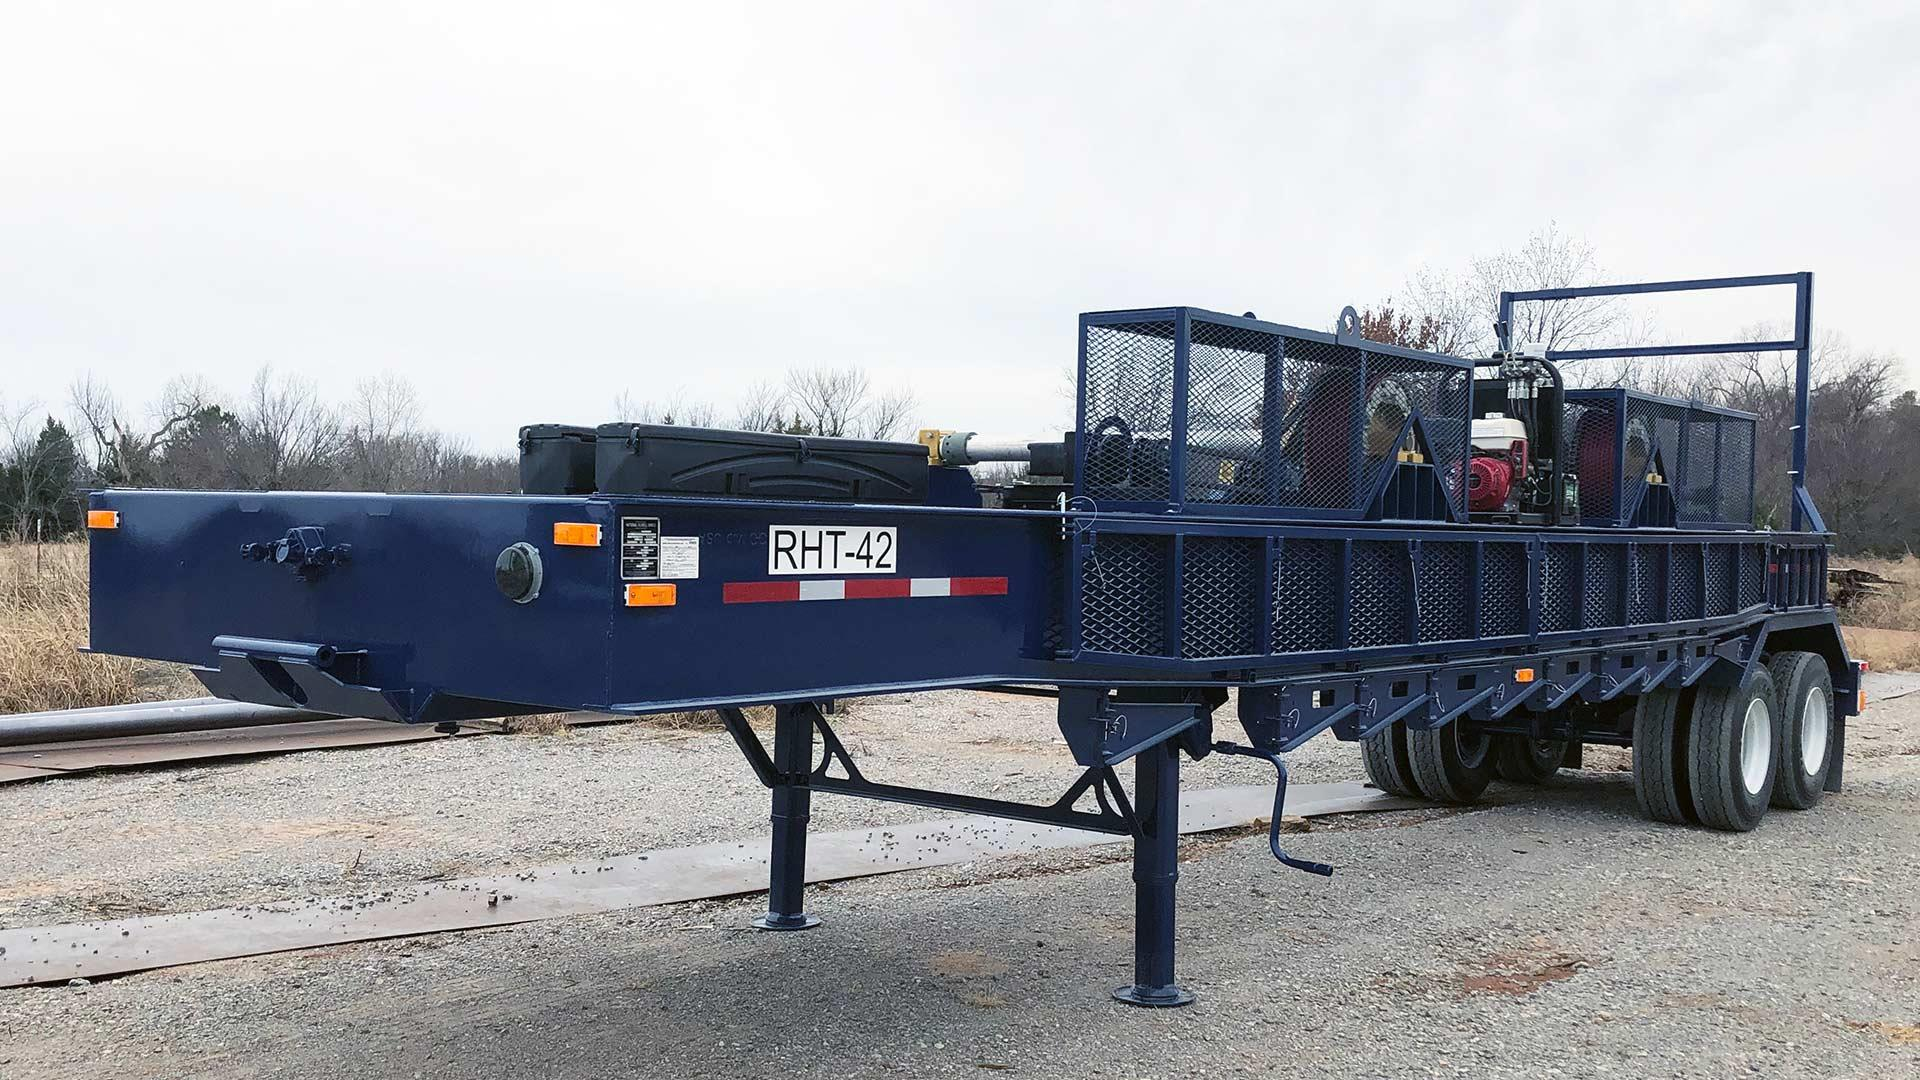 RHT42 2-Reel Spool Handling Trailer